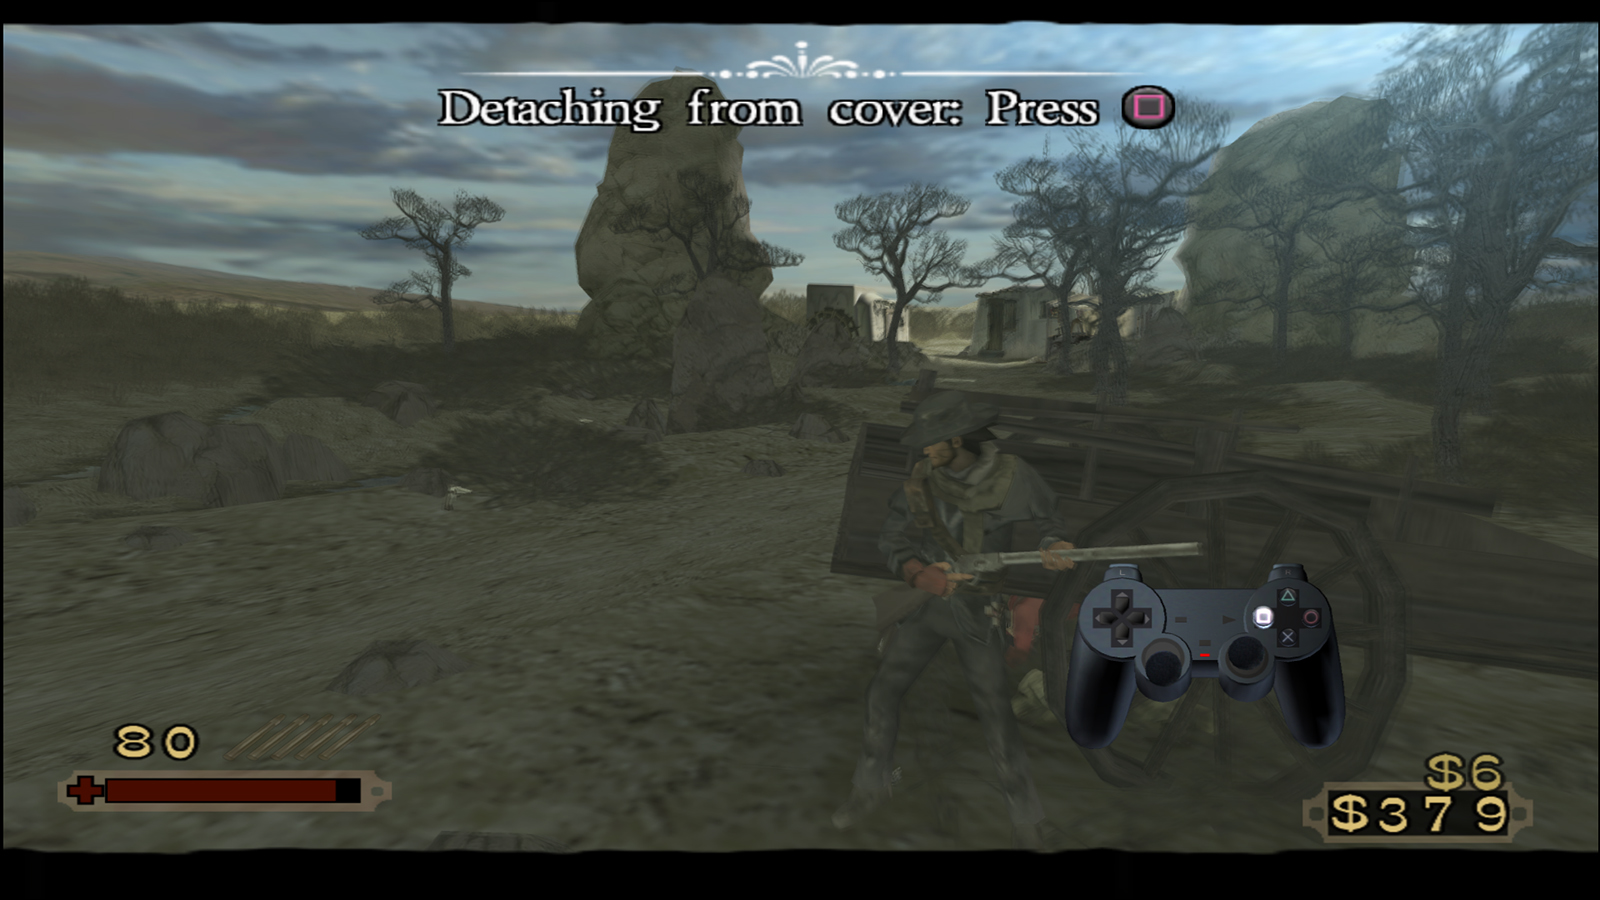 PS2 Emulation with PCSX2 - share your game configs! | NeoGAF